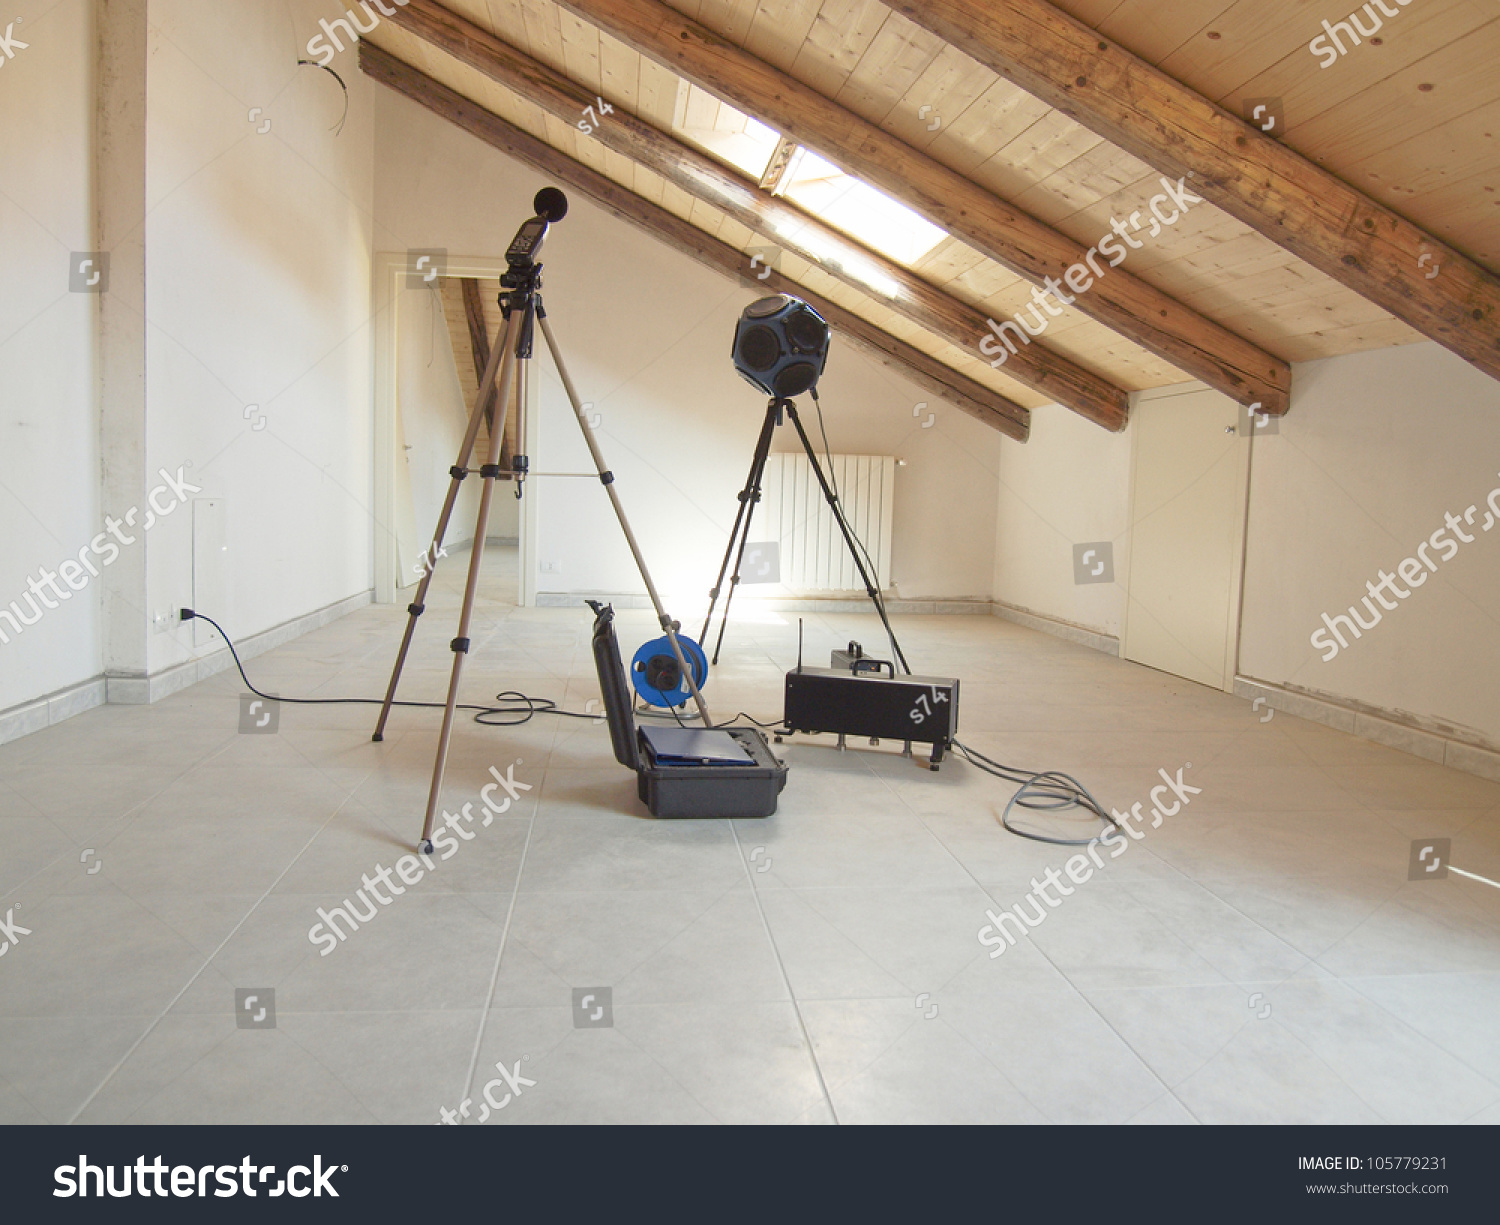 Pleasant Tool For Room Acoustics Measurement Of Omnidirectional Noise Largest Home Design Picture Inspirations Pitcheantrous